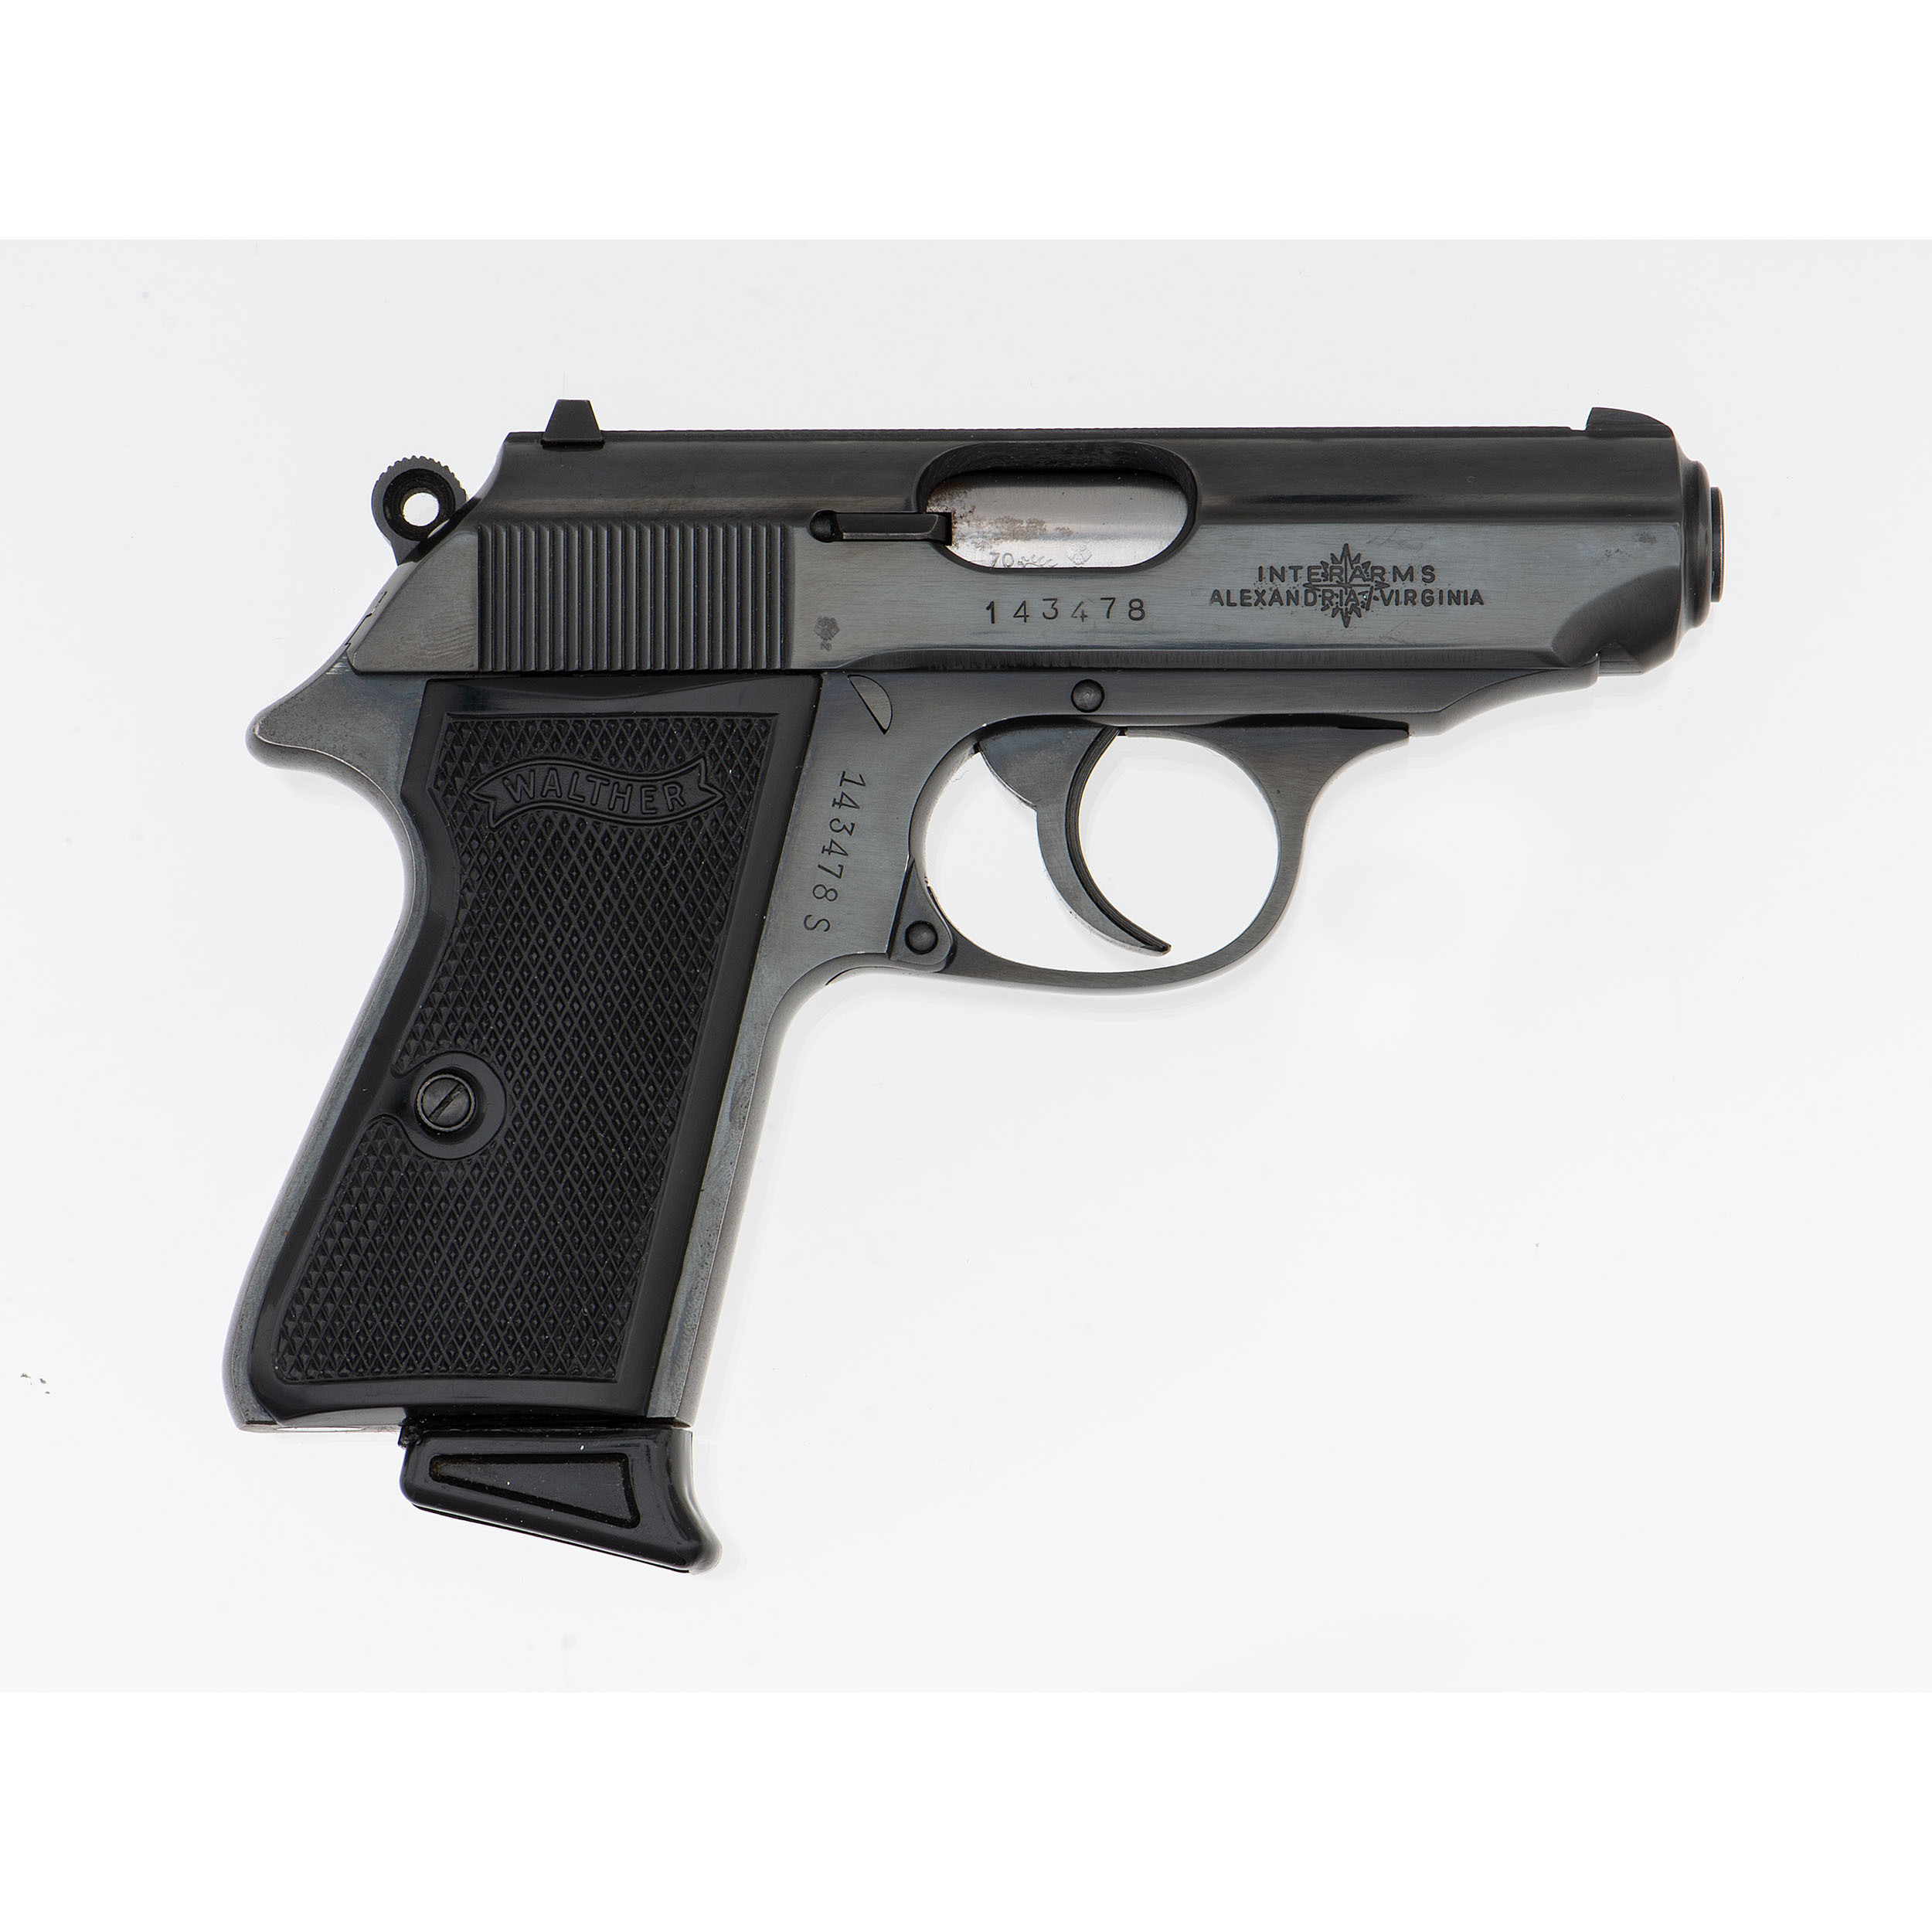 Walther PPK/S | Cowan's Auction House: The Midwest's Most